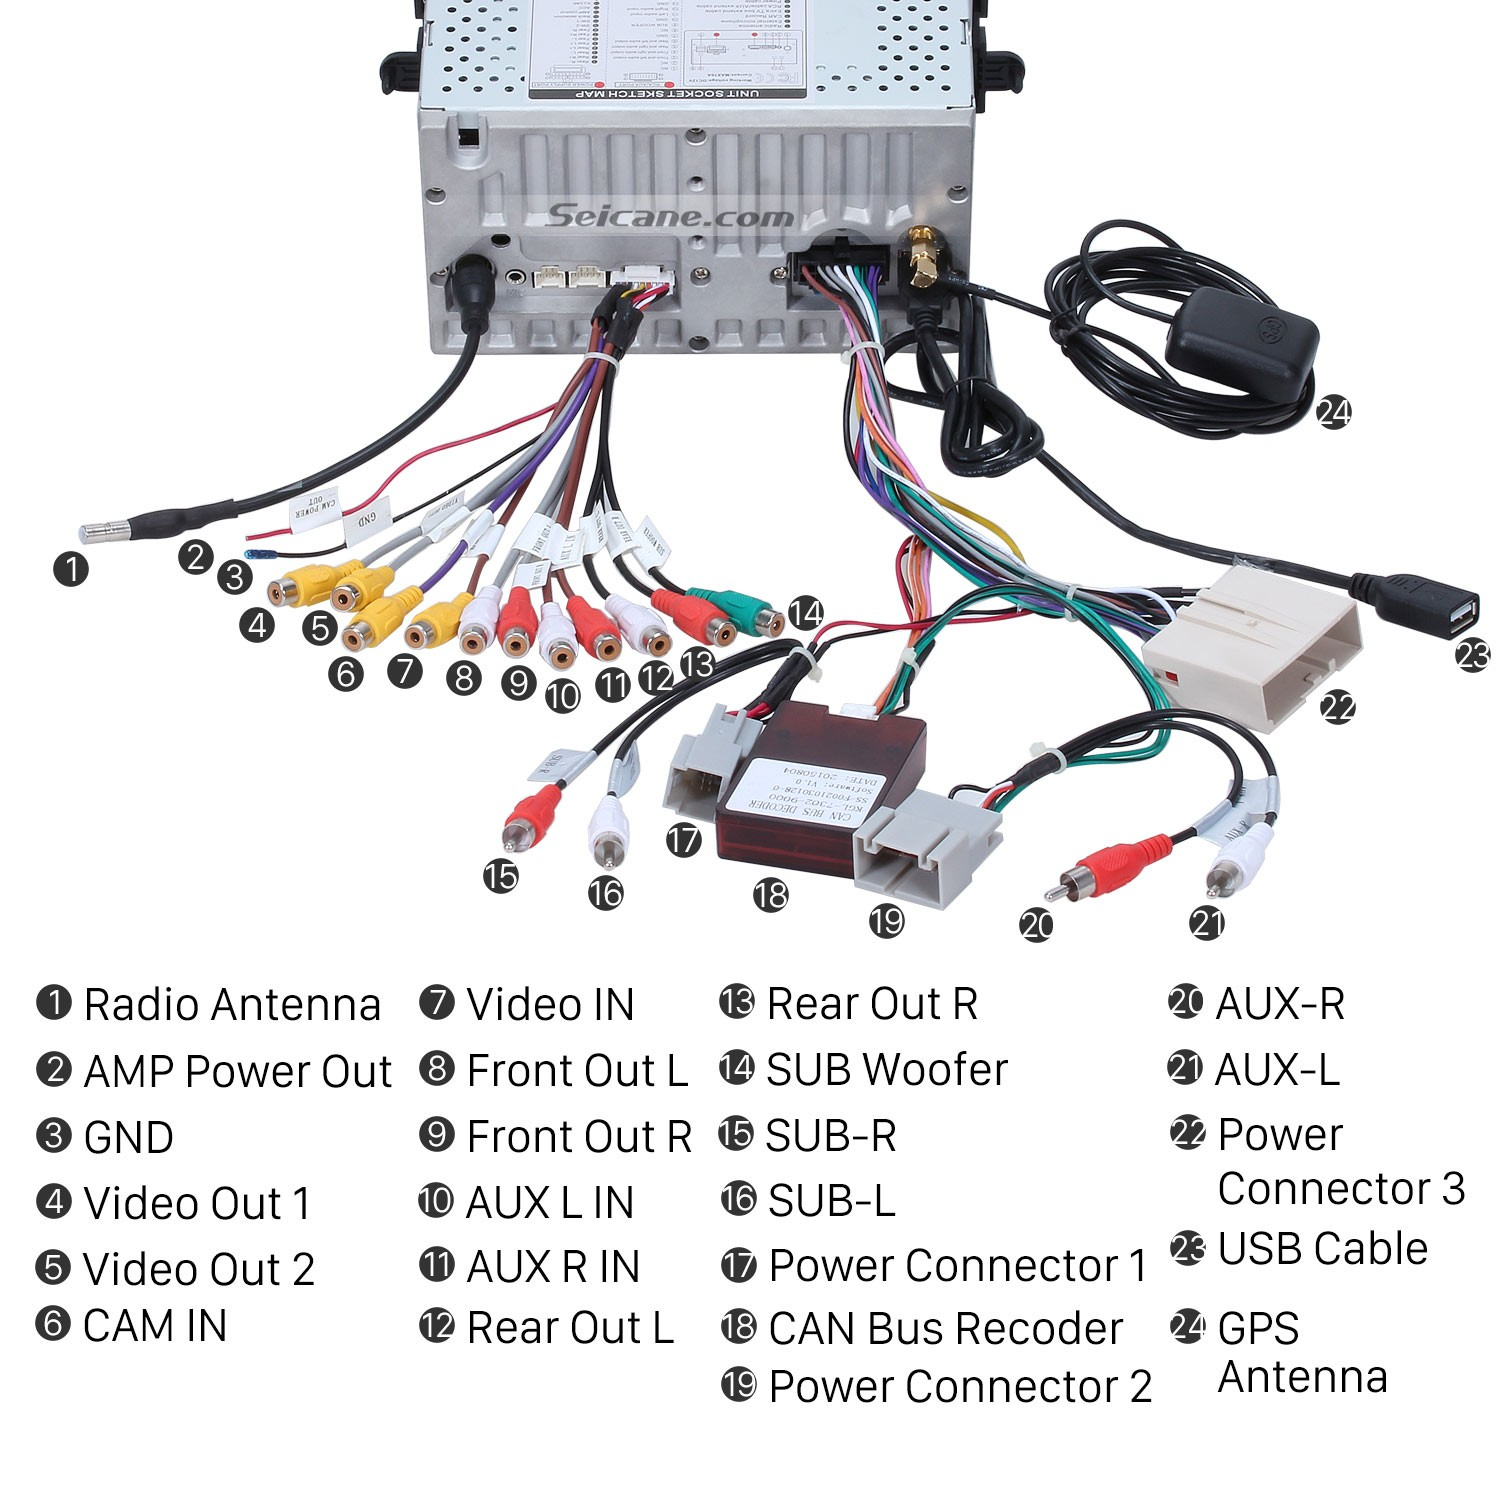 2010 Ford Focus Radio Wiring Diagram 36 Images Car Sound System Connect The Harnesses To Back Of New Seicane 2004